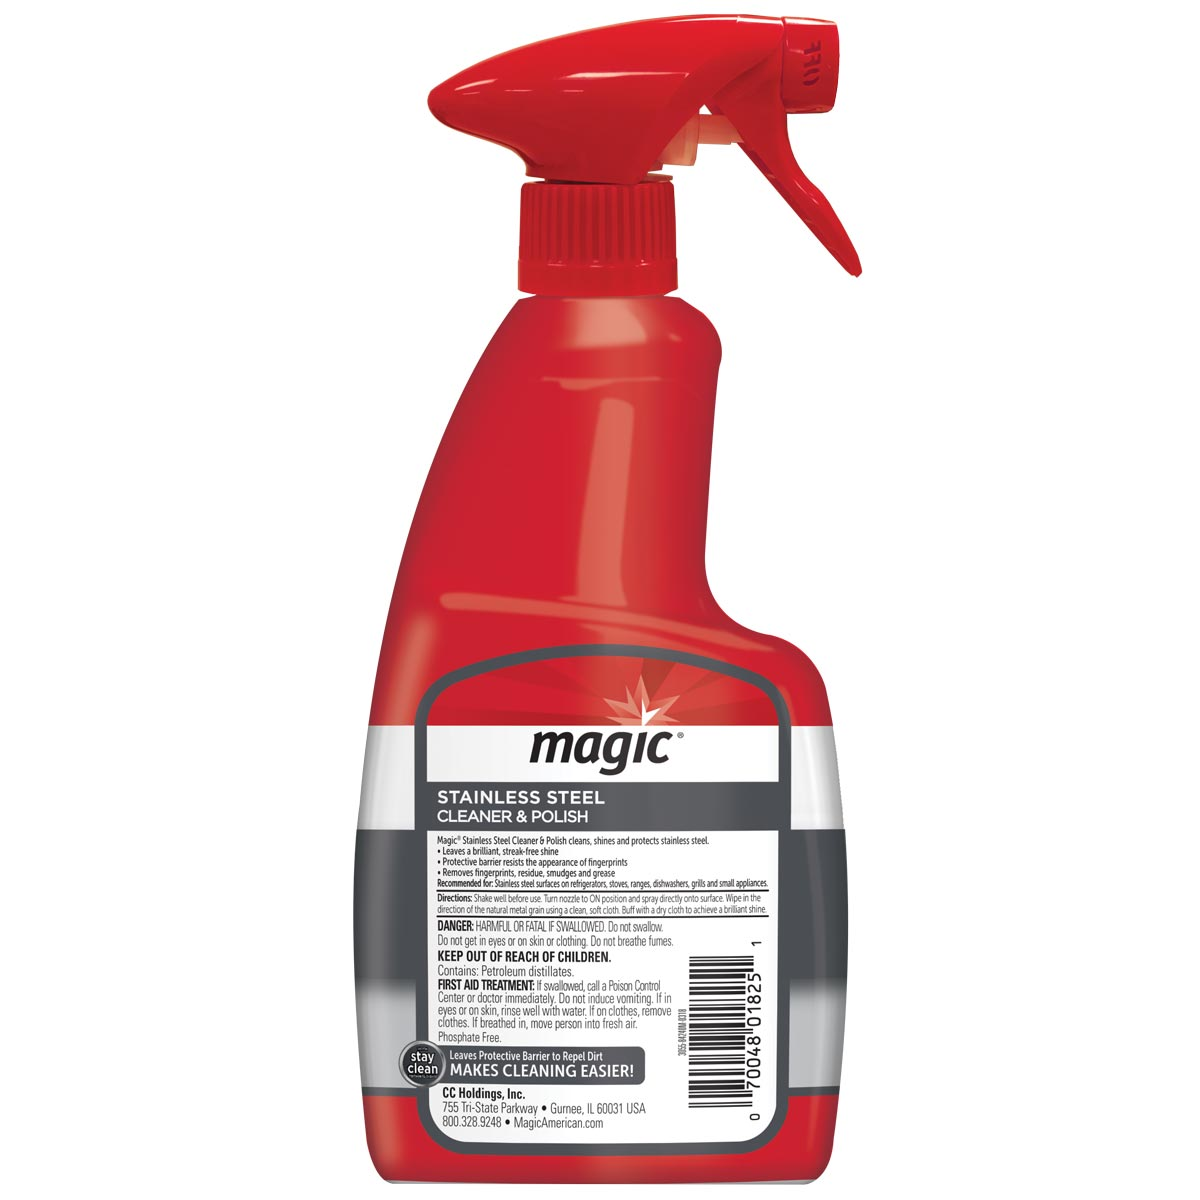 Magic Stainless Cleaner Spray back label